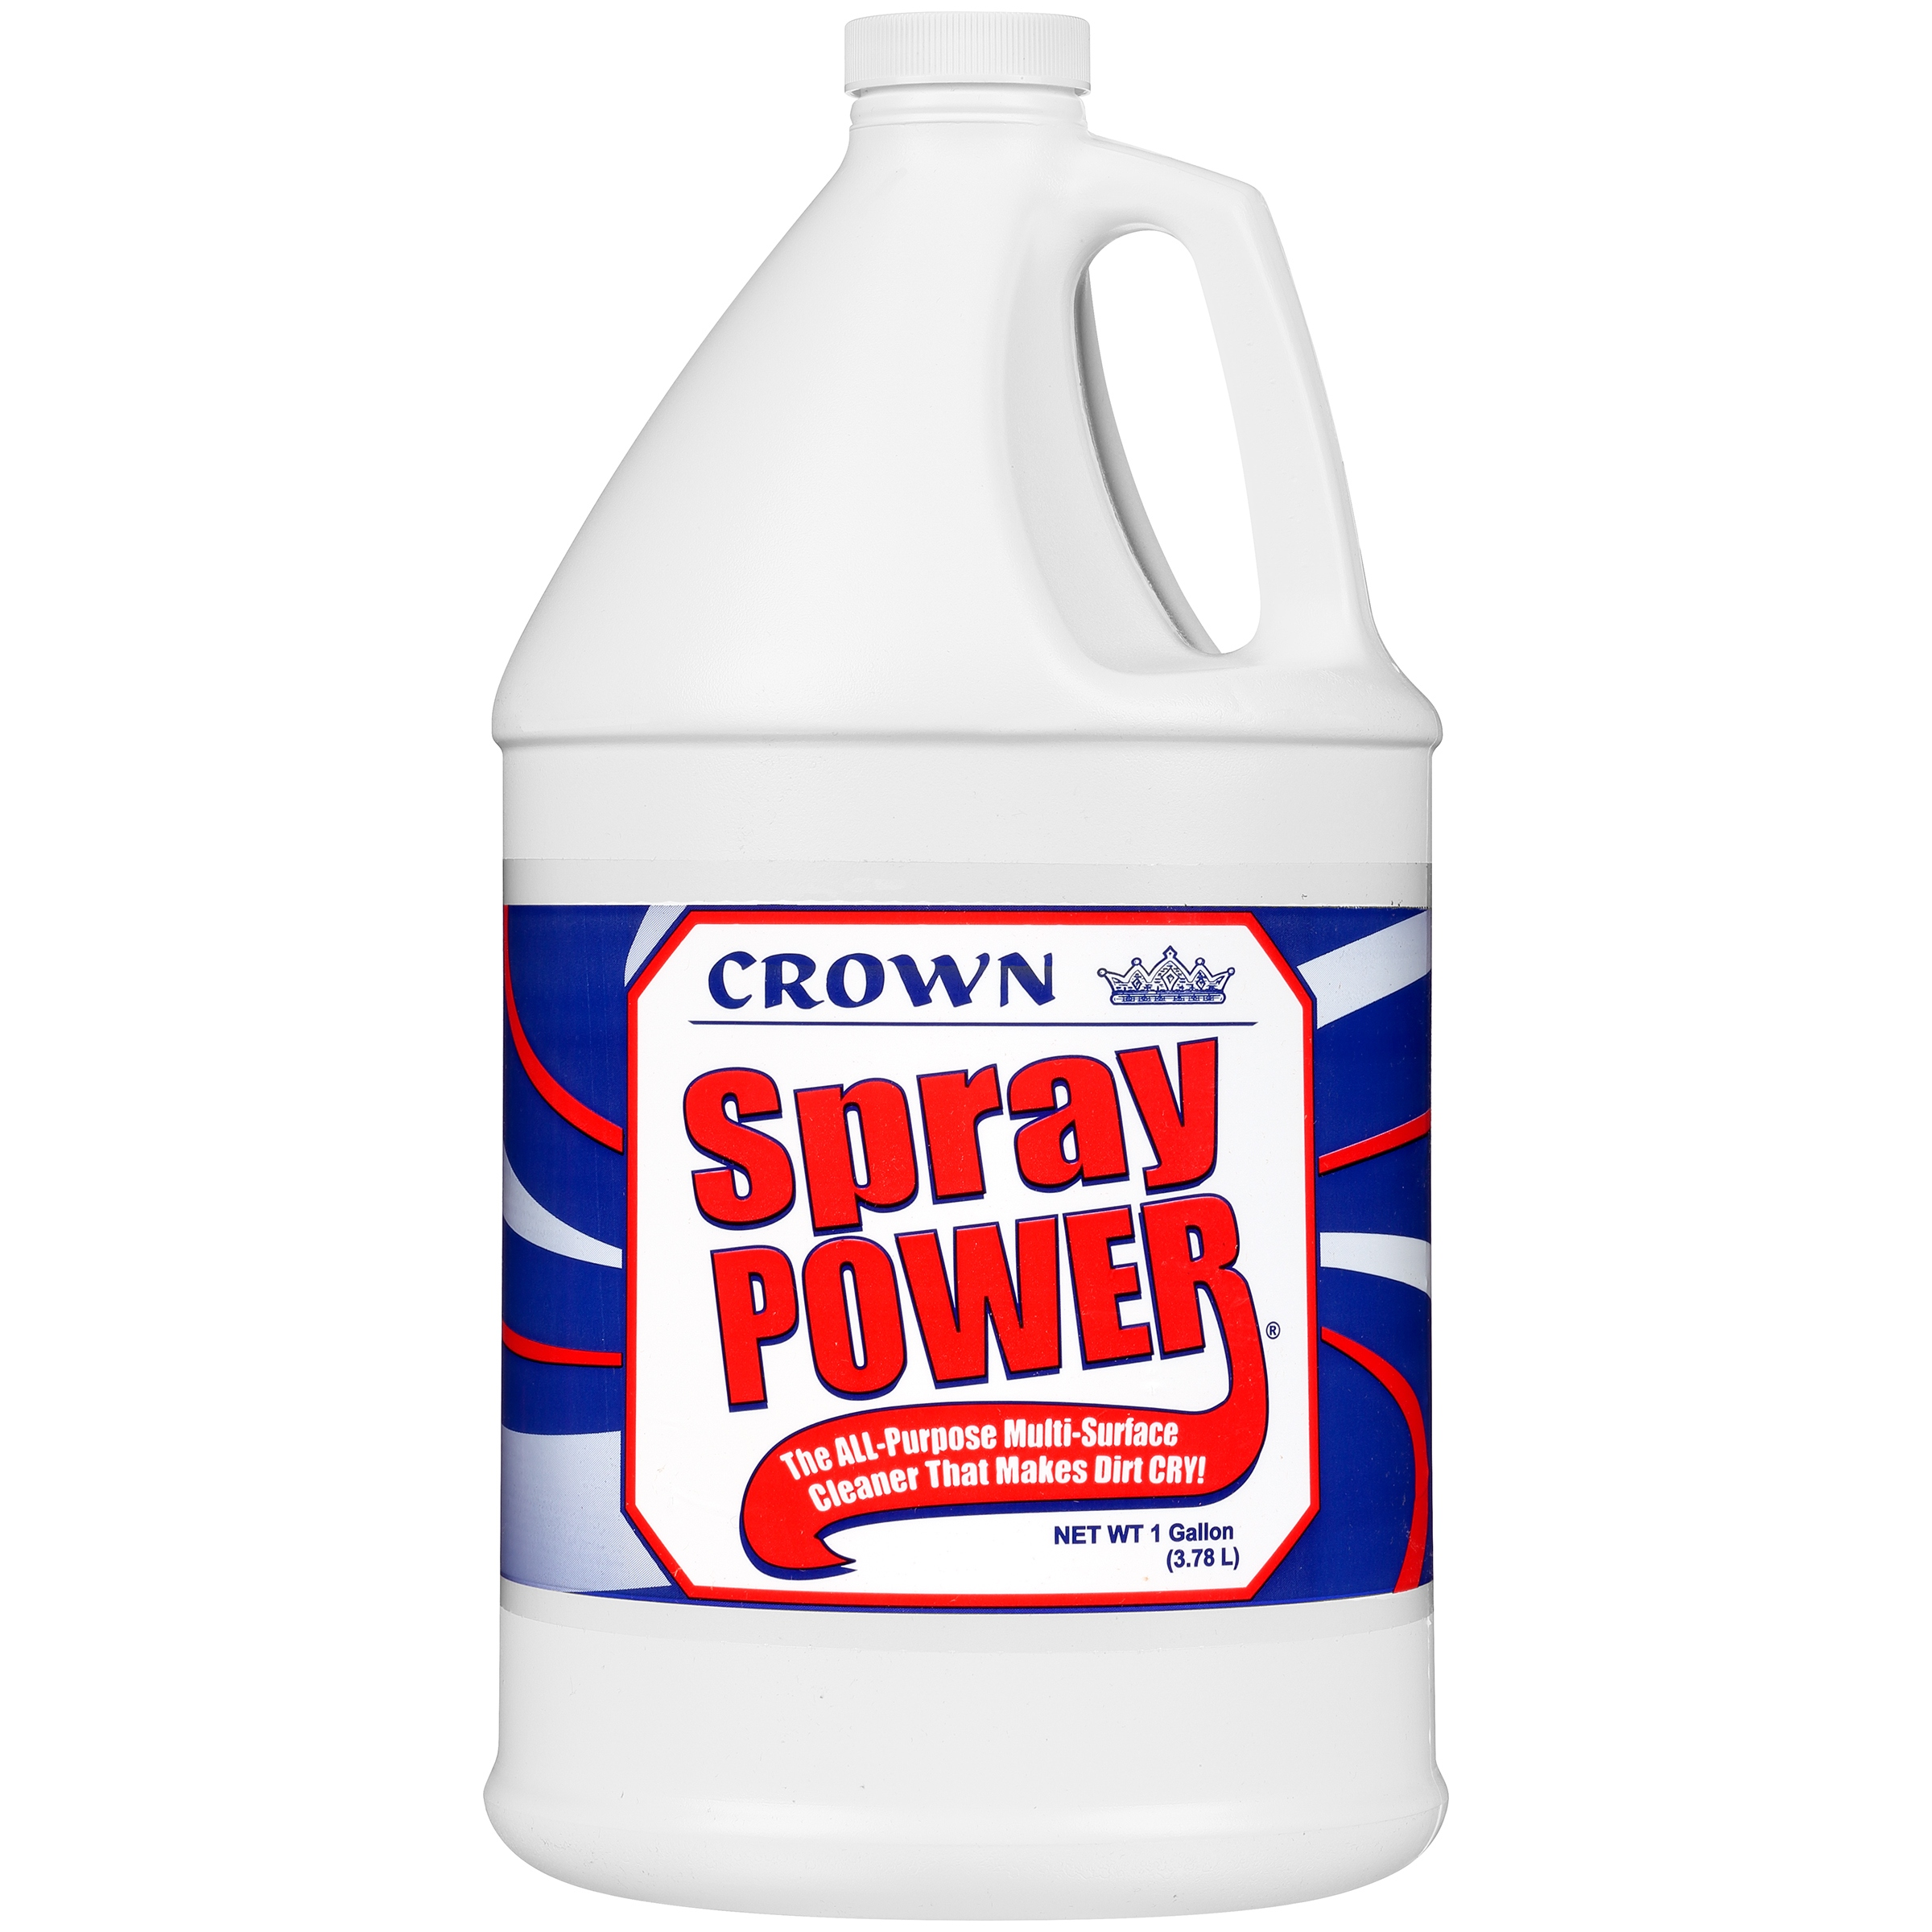 Crown Spray Power All-Purpose Multi-Surface Cleaner, 1 gal - Walmart.com